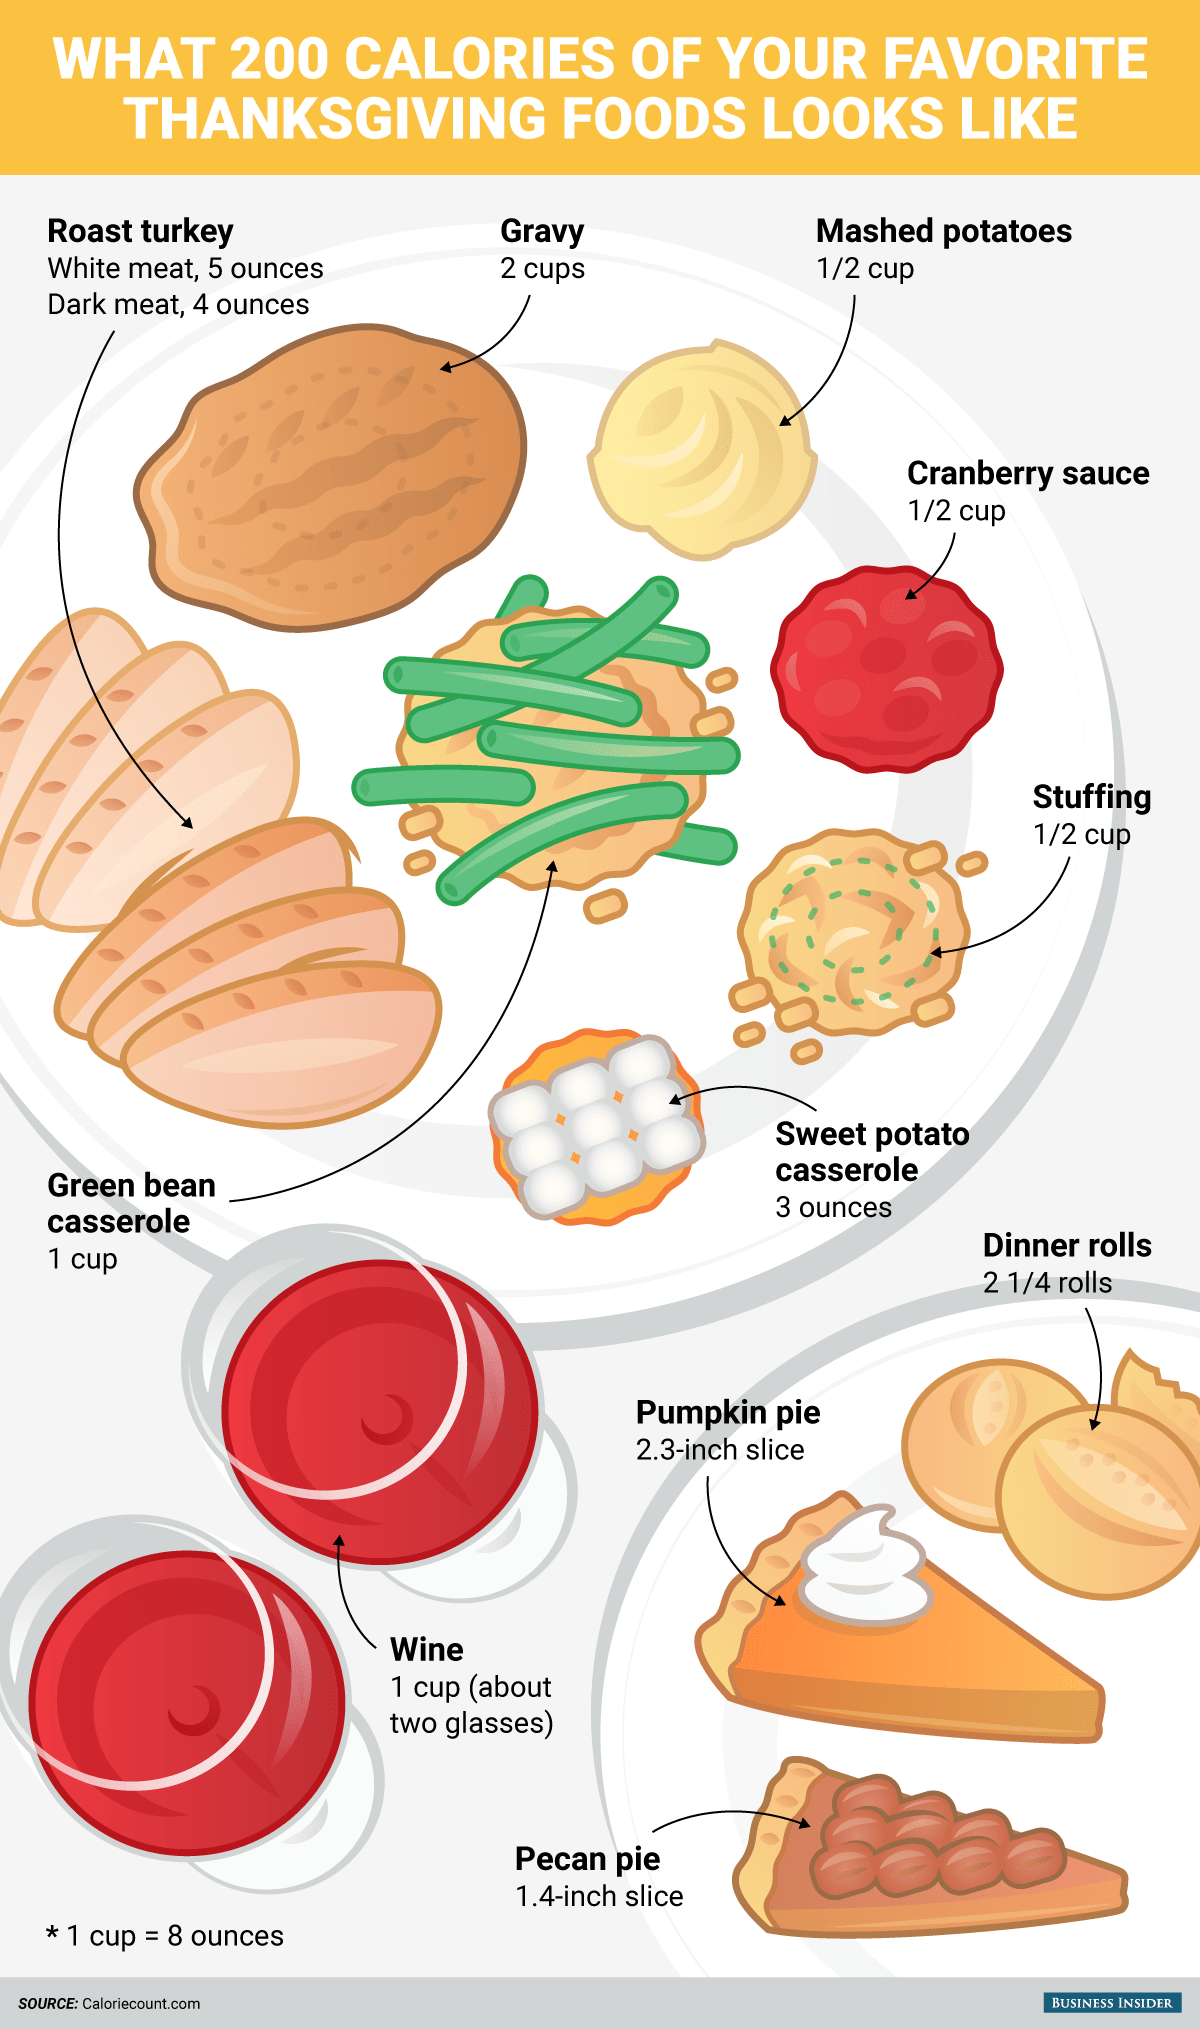 What 200 Calories Of Your Favorite Thanksgiving Foods